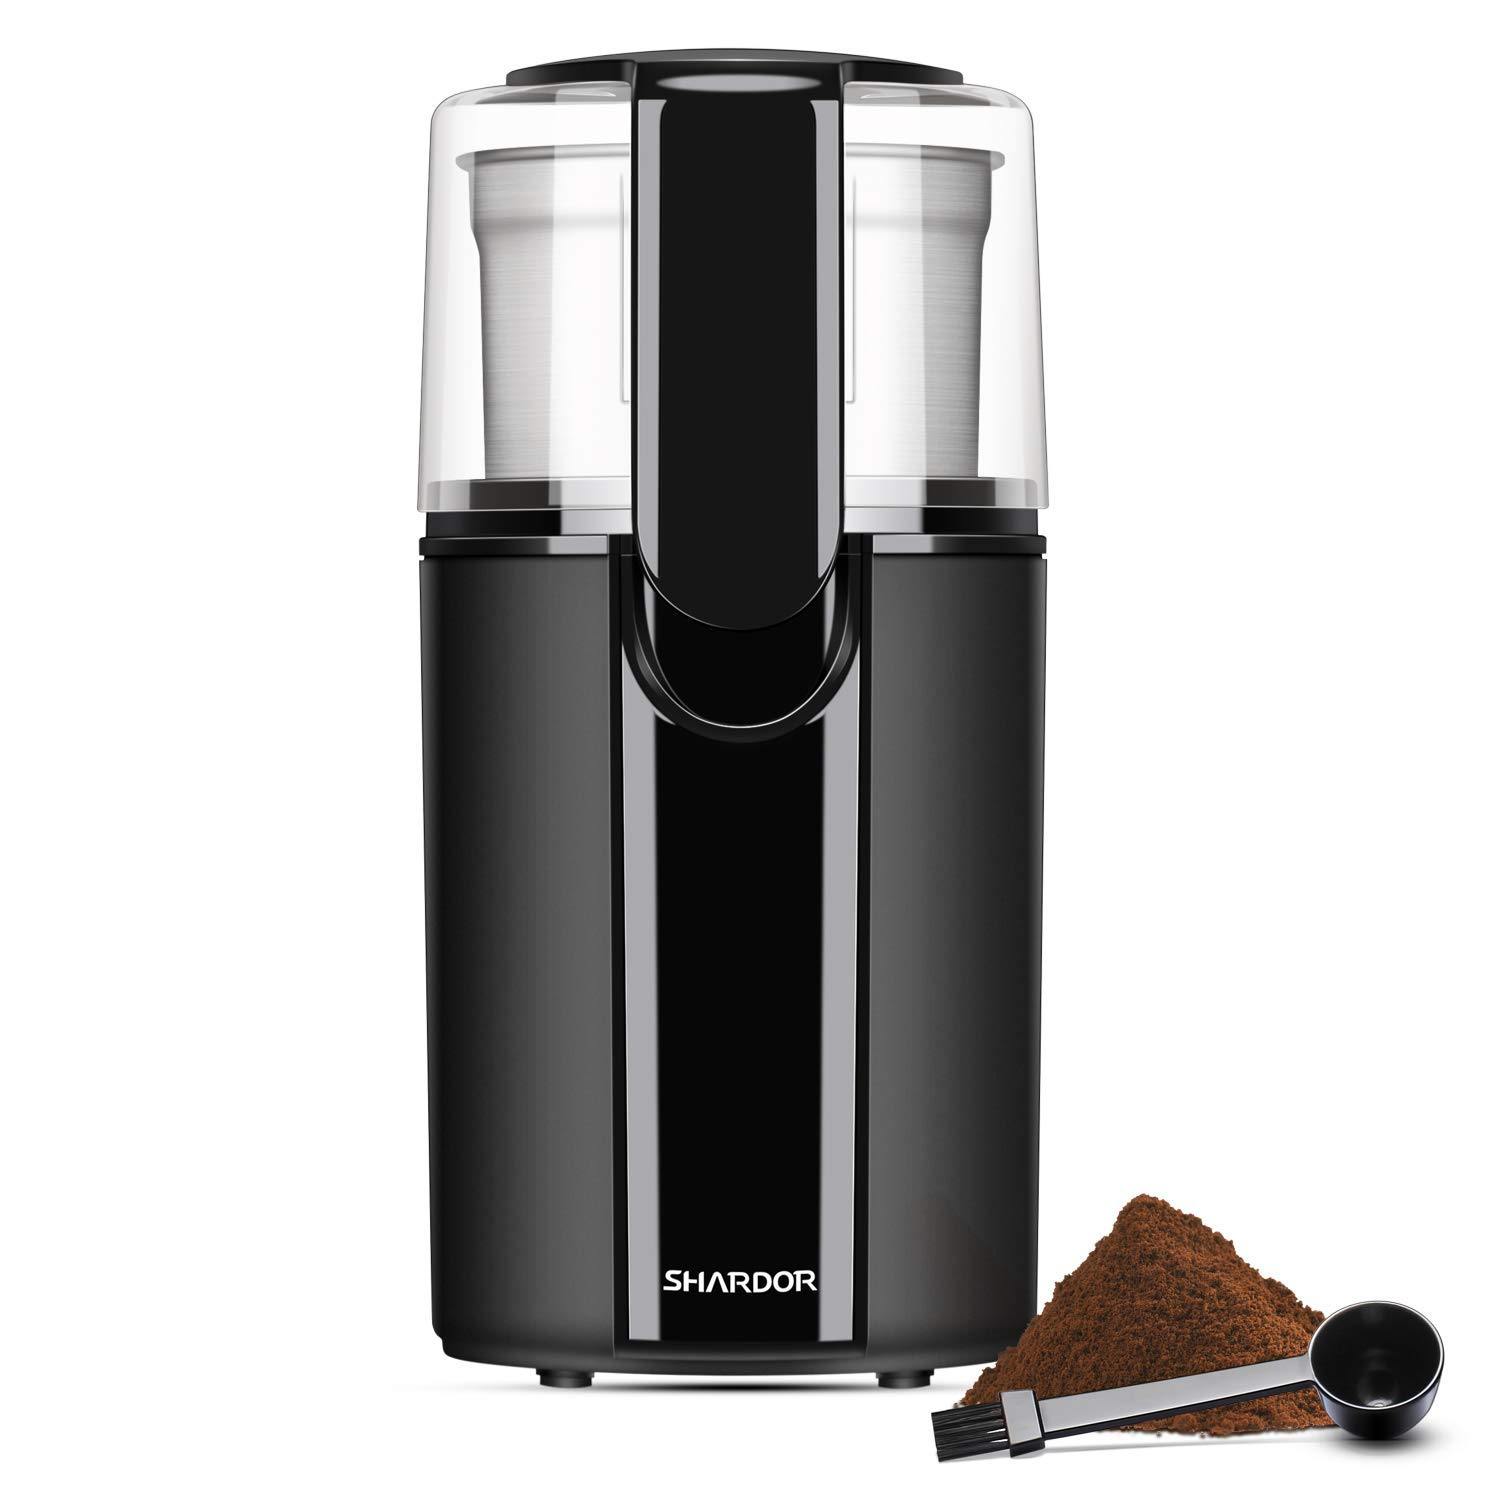 SHARDOR Coffee Grinder Electric, Electric Coffee Blade Grinders with Removable Stainless Steel Bowl, Black by SHARDOR